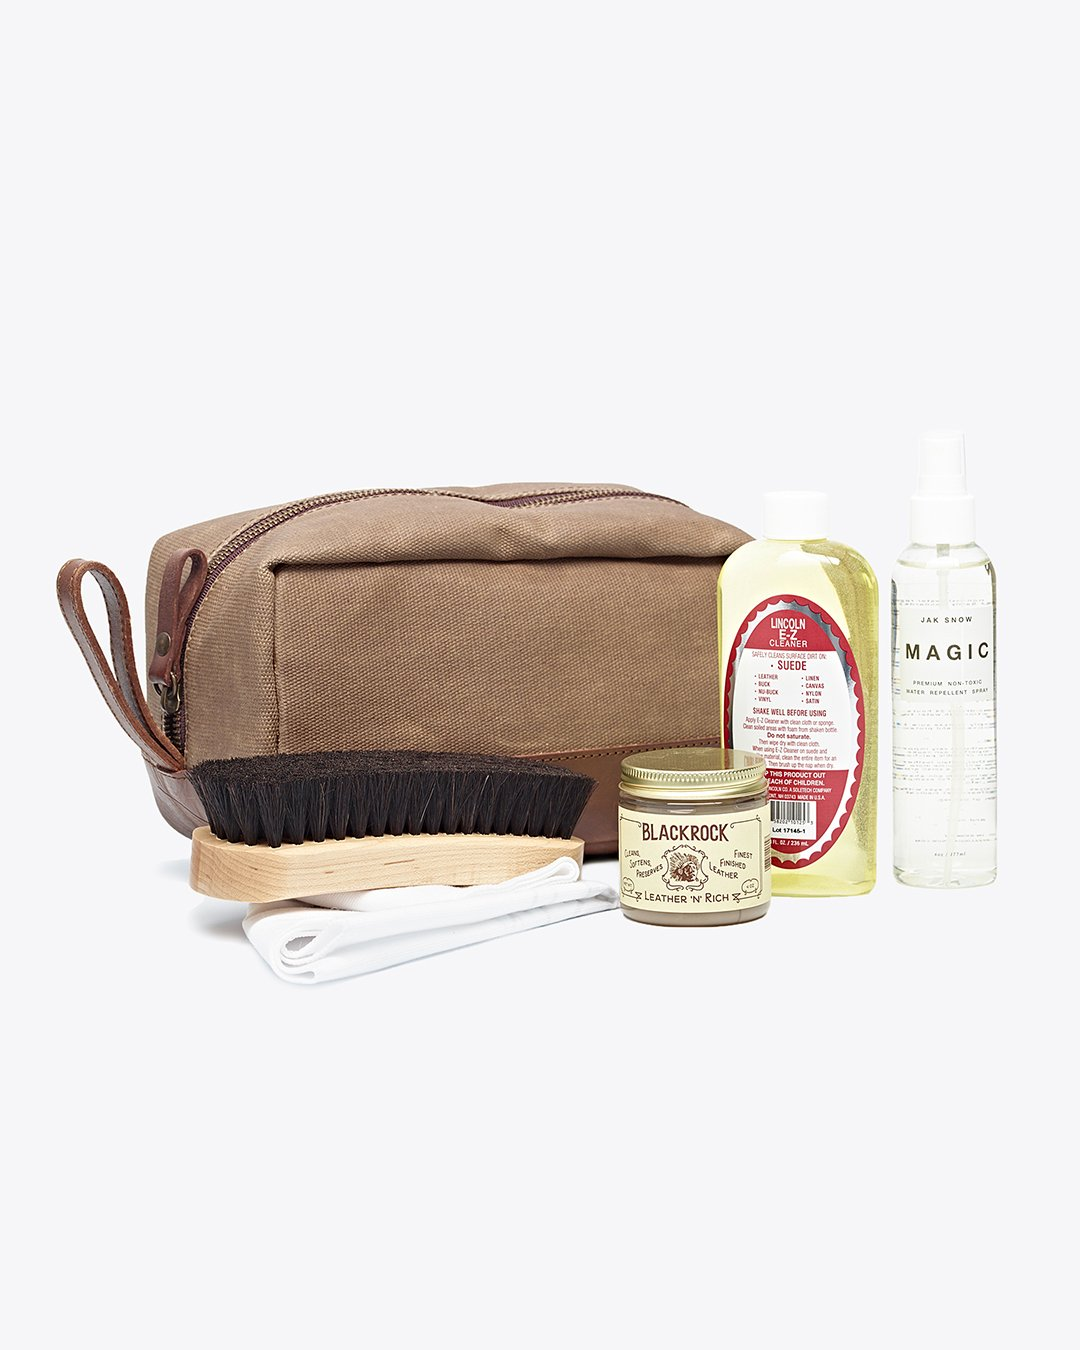 Shoe Care Kit - Nisolo | This leather shoe care kit comes with all the bells and whistles, including a beautiful travel bag to keep it all in.